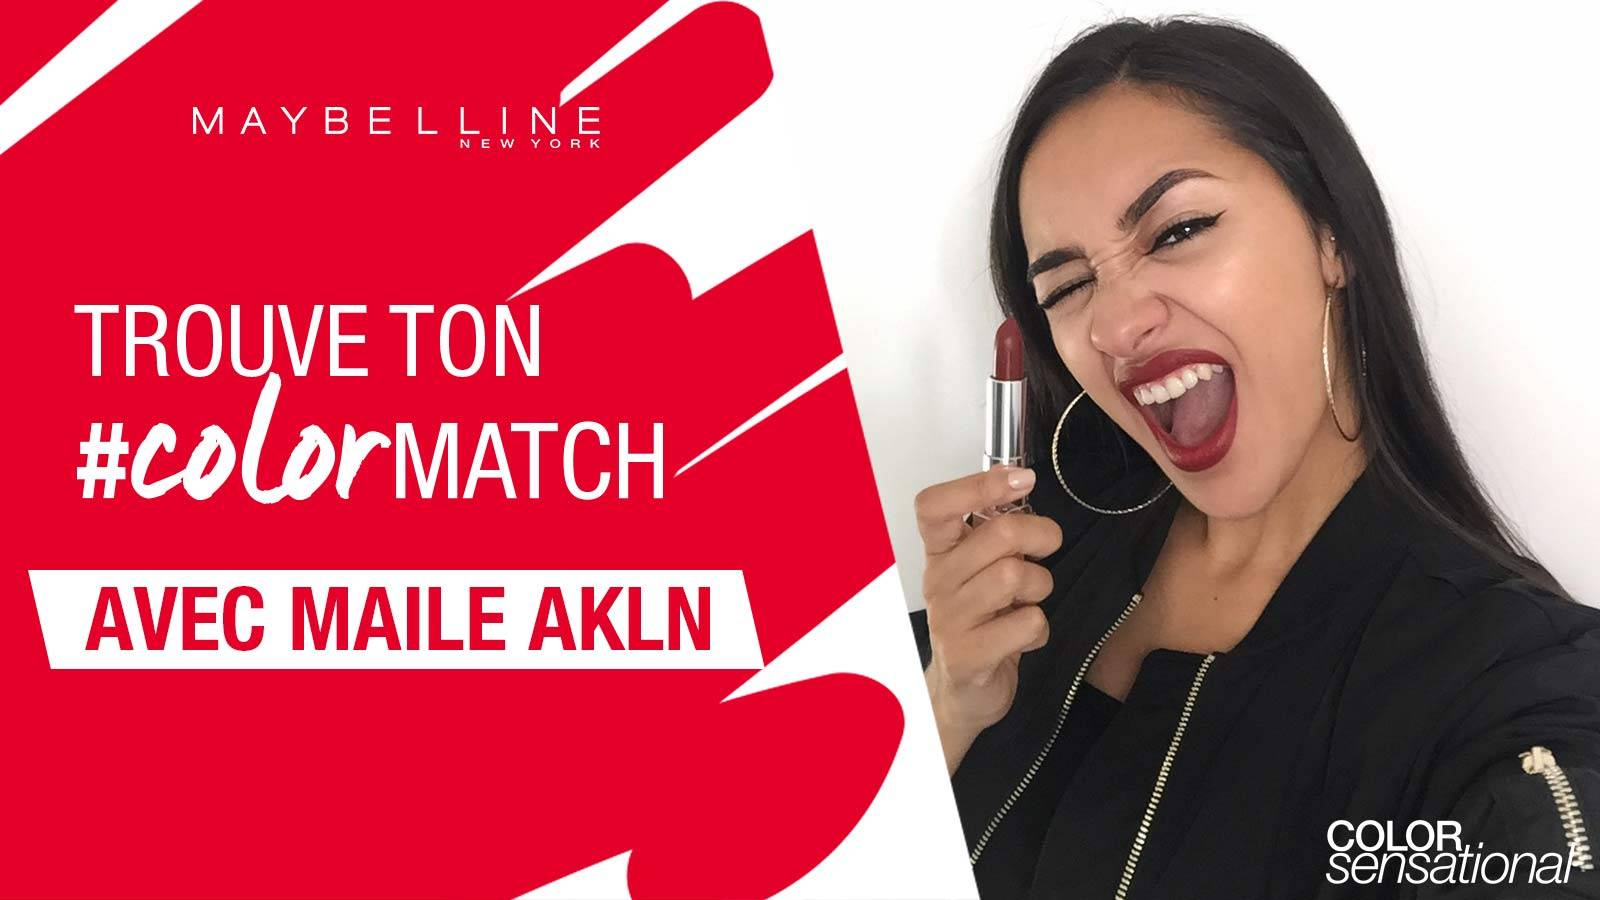 maybelline-color-match-maile-akln-video-16x9